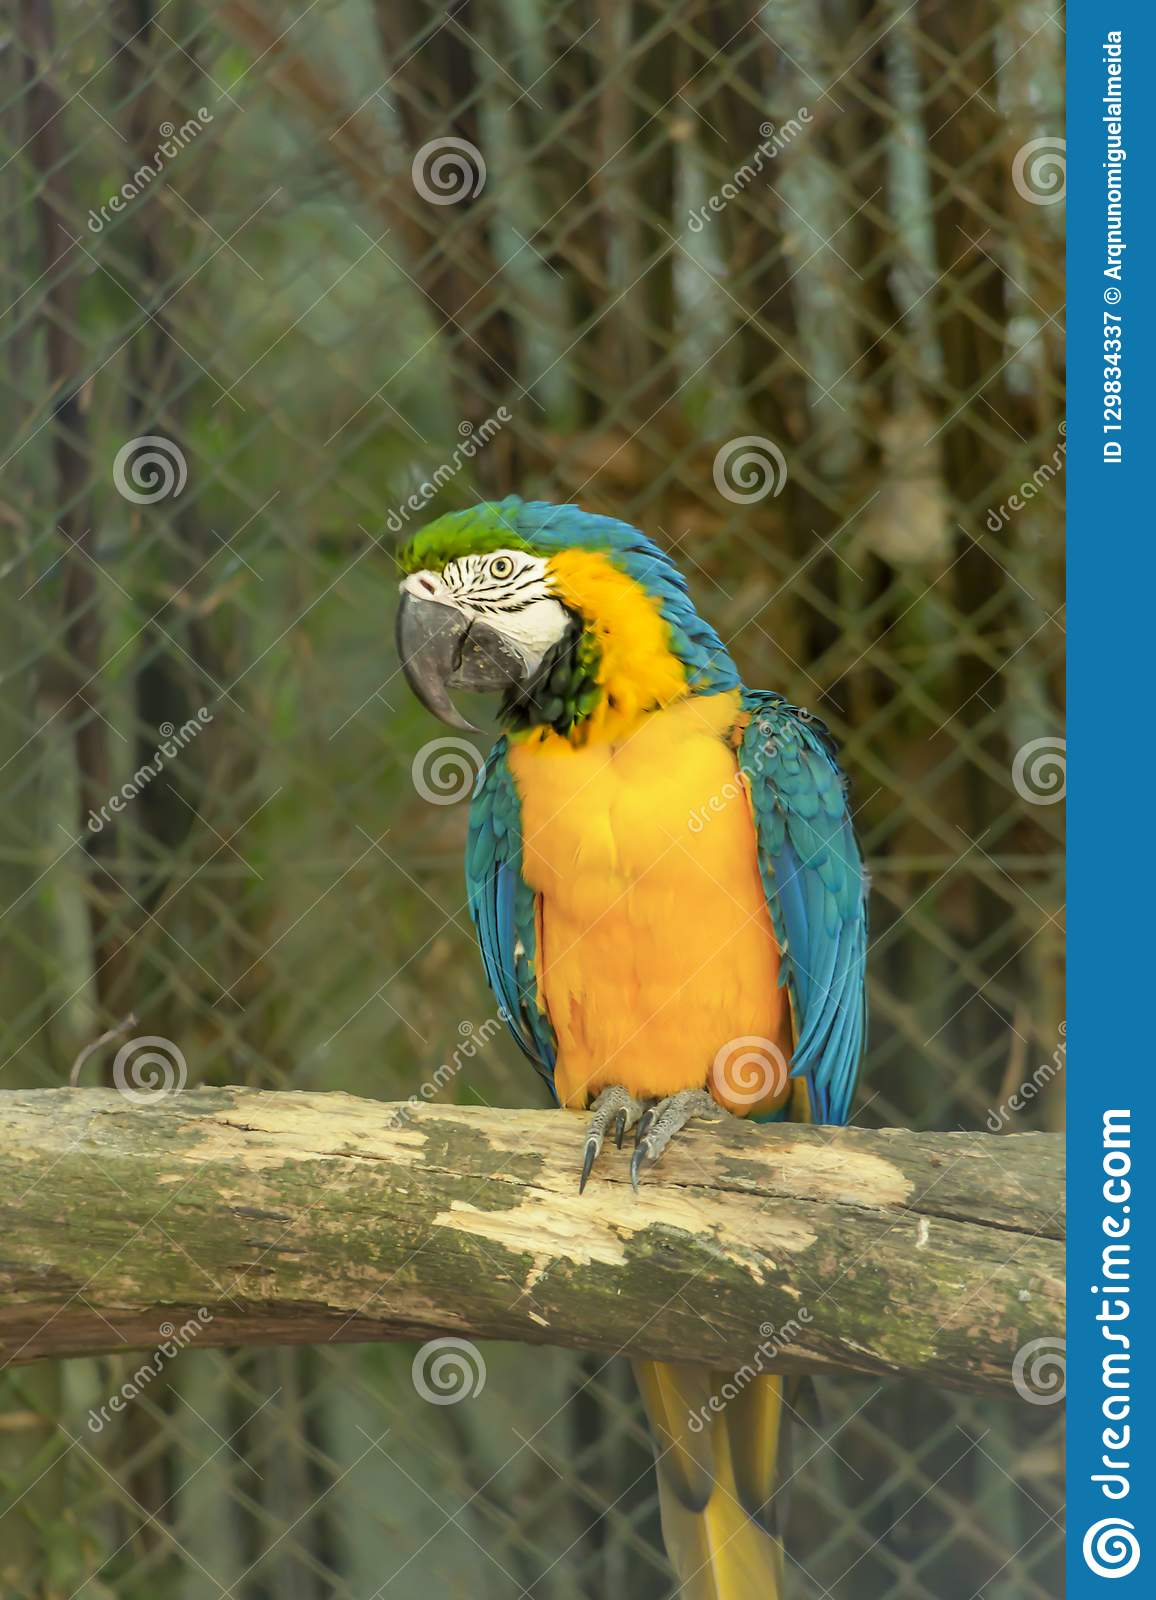 Yellow and blue ara macaw on perch